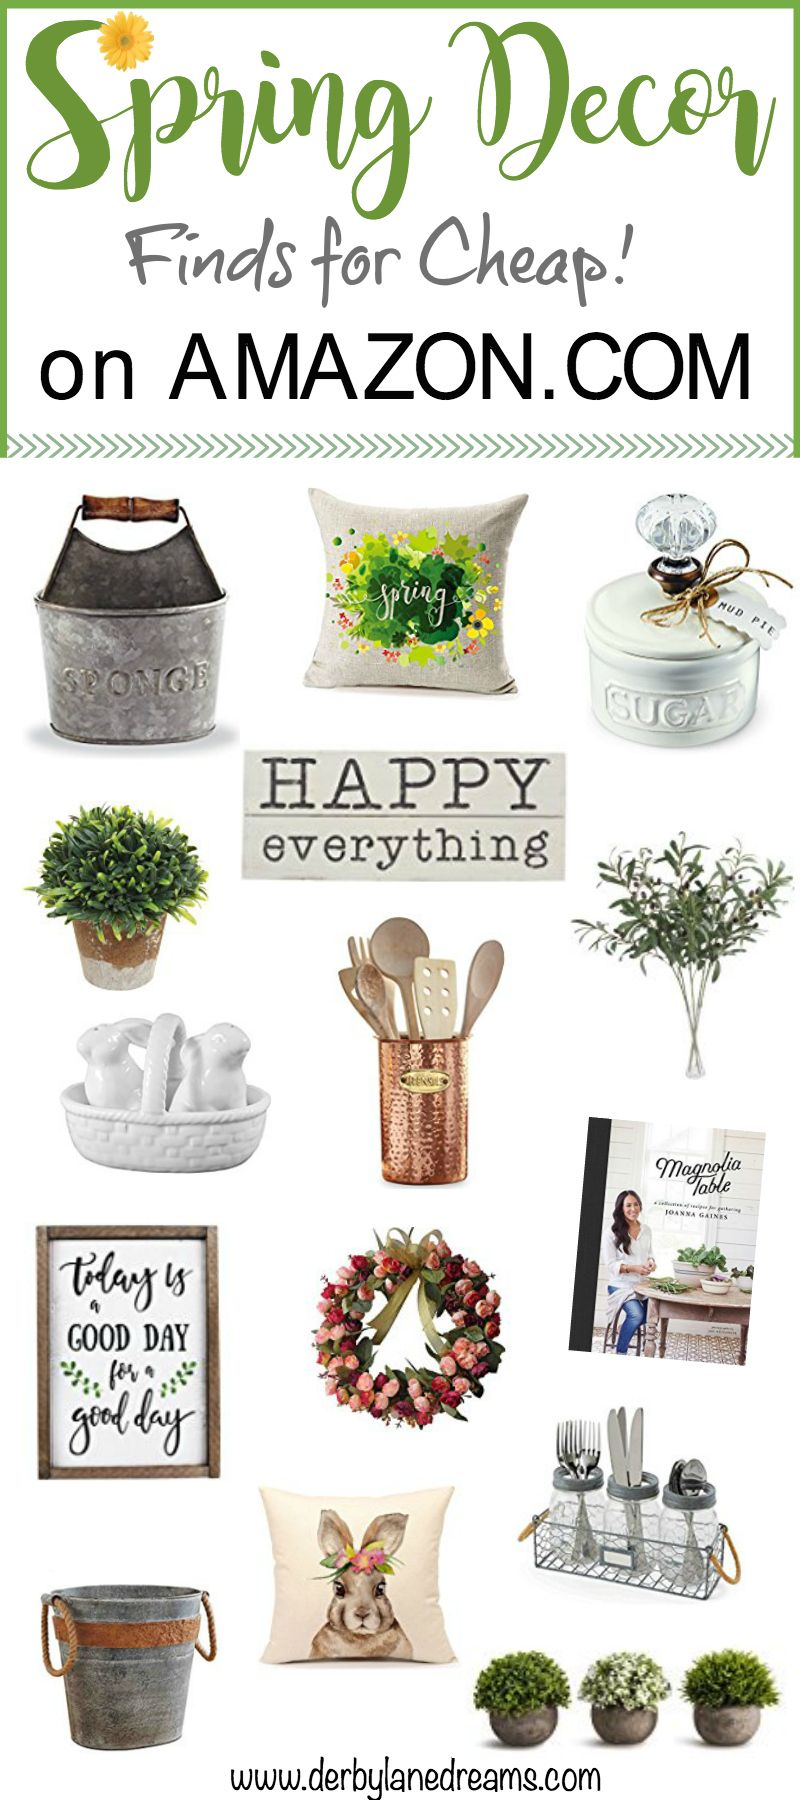 Spring decor and easter decor ideas on a budget cheap affordable decor for your apartment for renters and anyone rustic farmhouse vintage